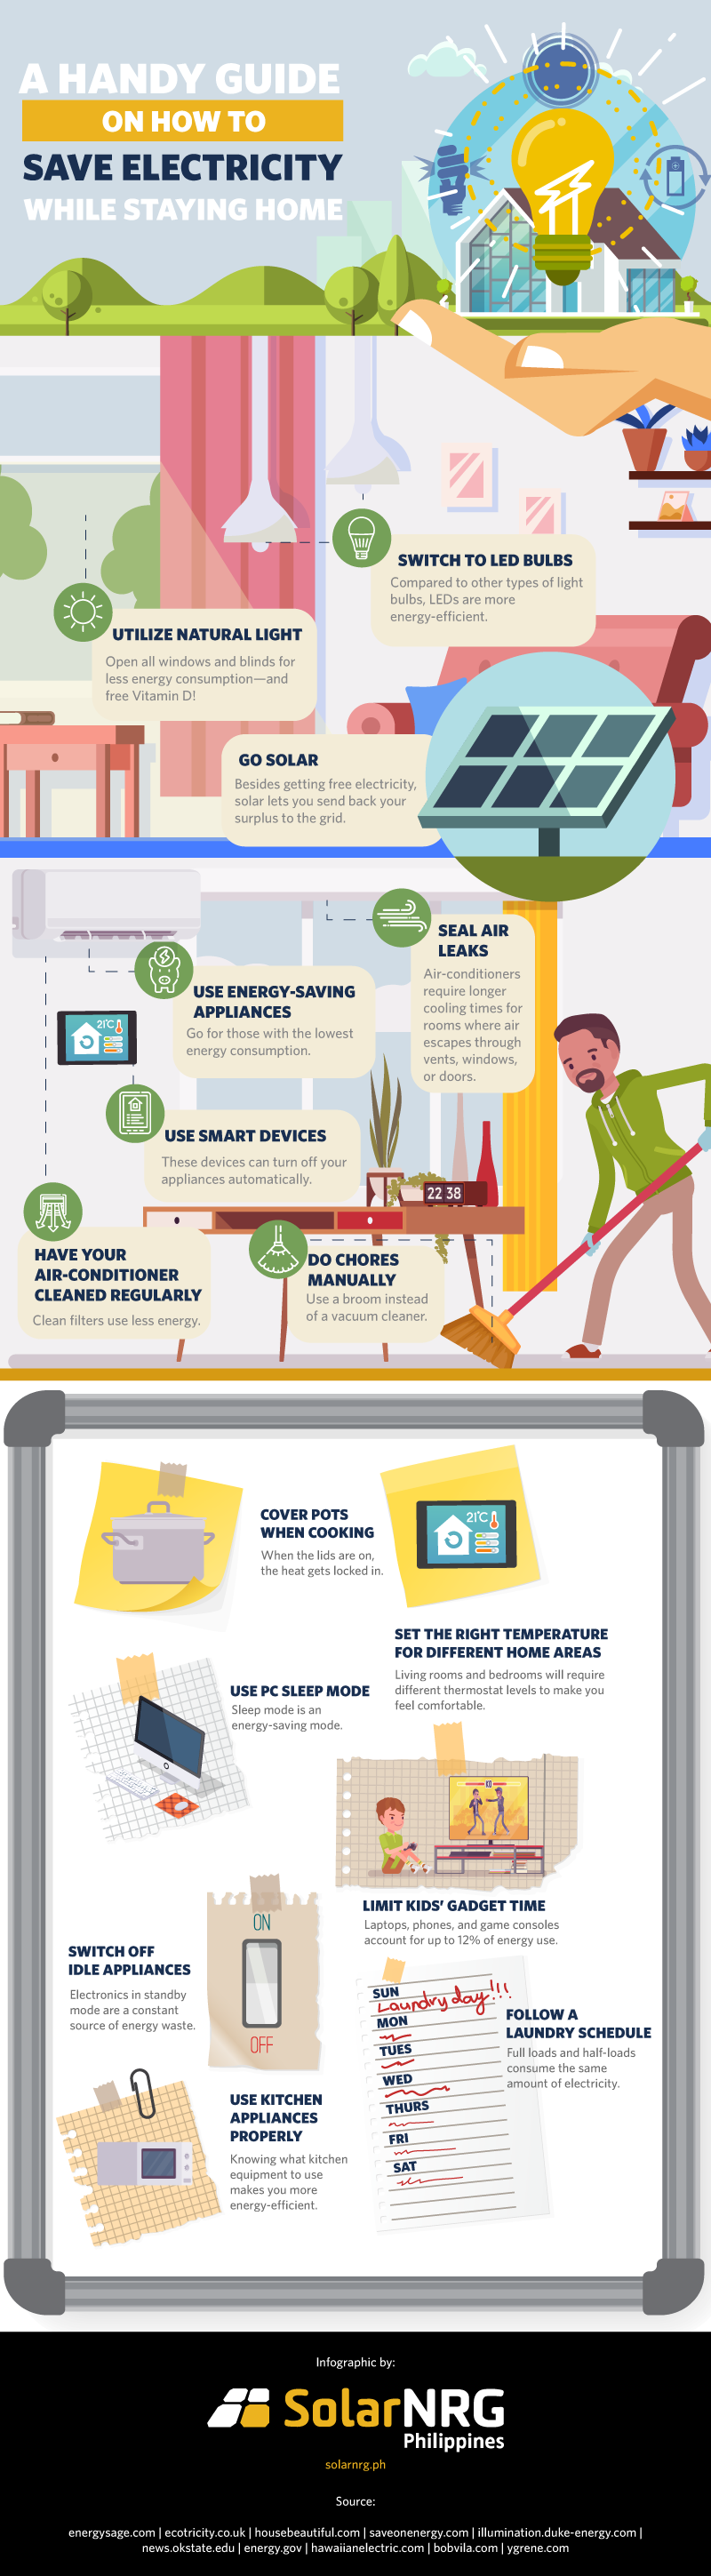 Infographic guide to saving electricity at home